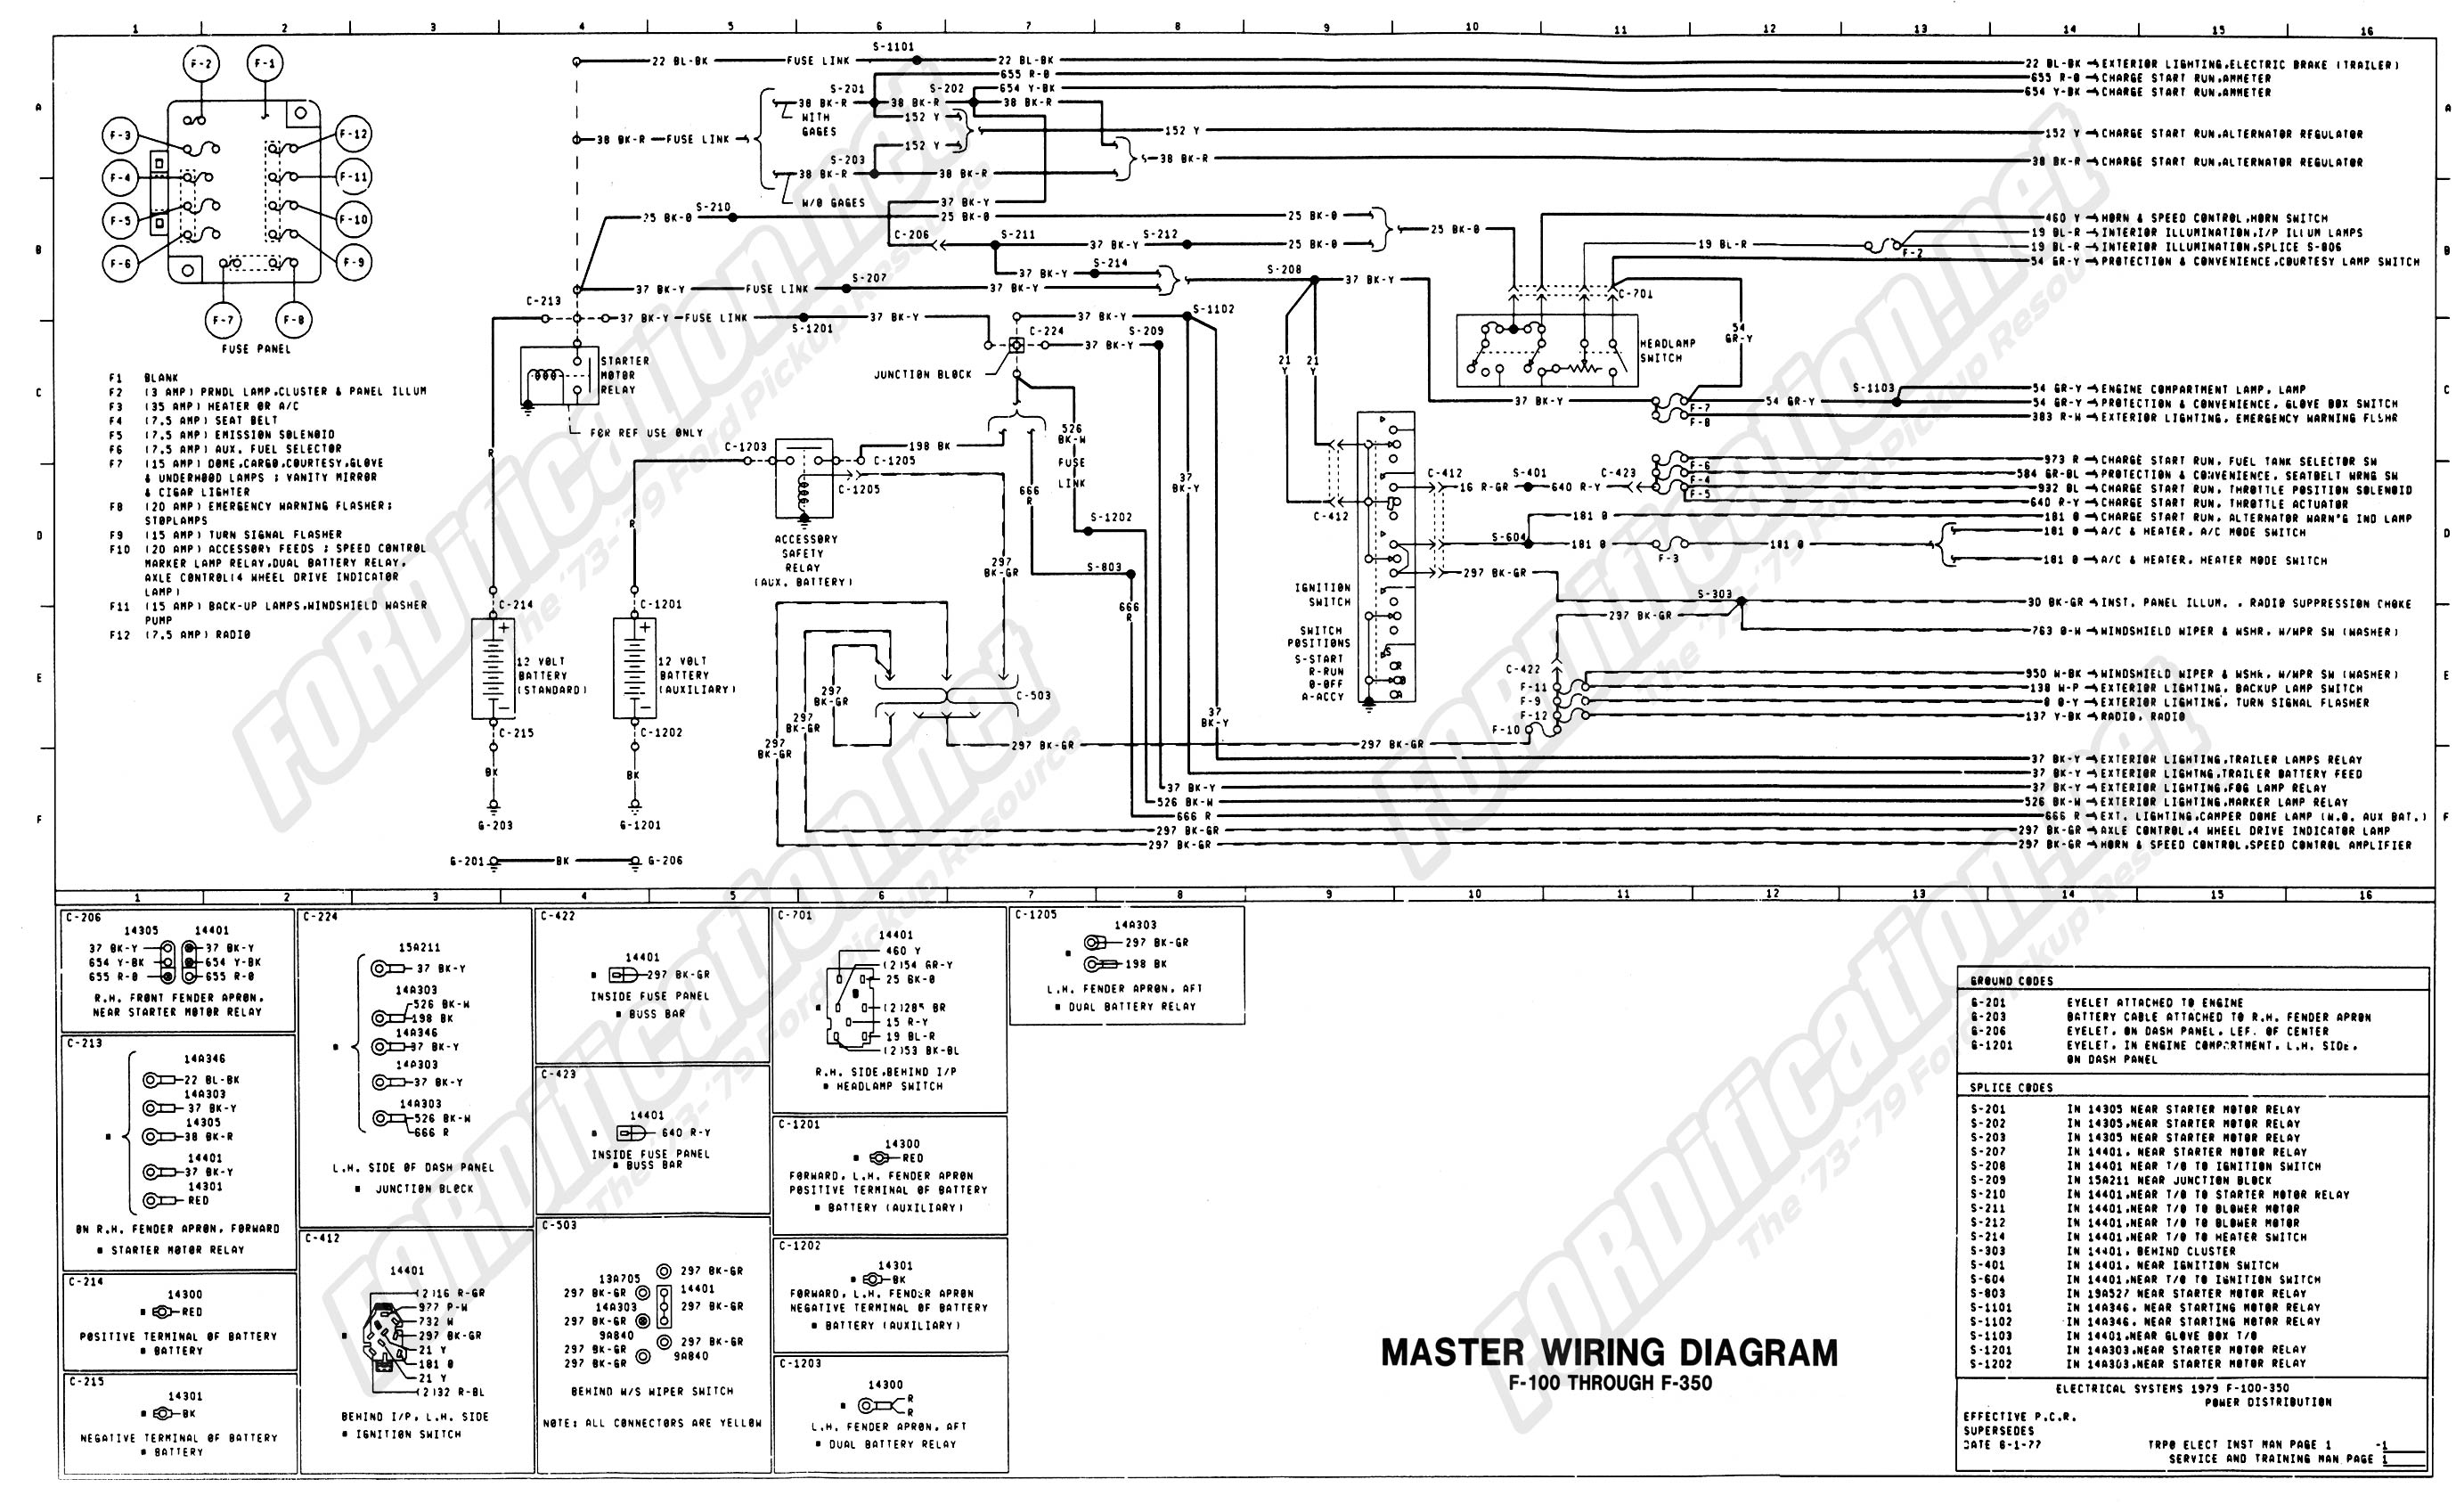 sterling wiring harness wiring library wiring harness terminals and connectors sterling fuse box diagram best site wiring harness ford fuse box diagram 2001 sterling fuse box